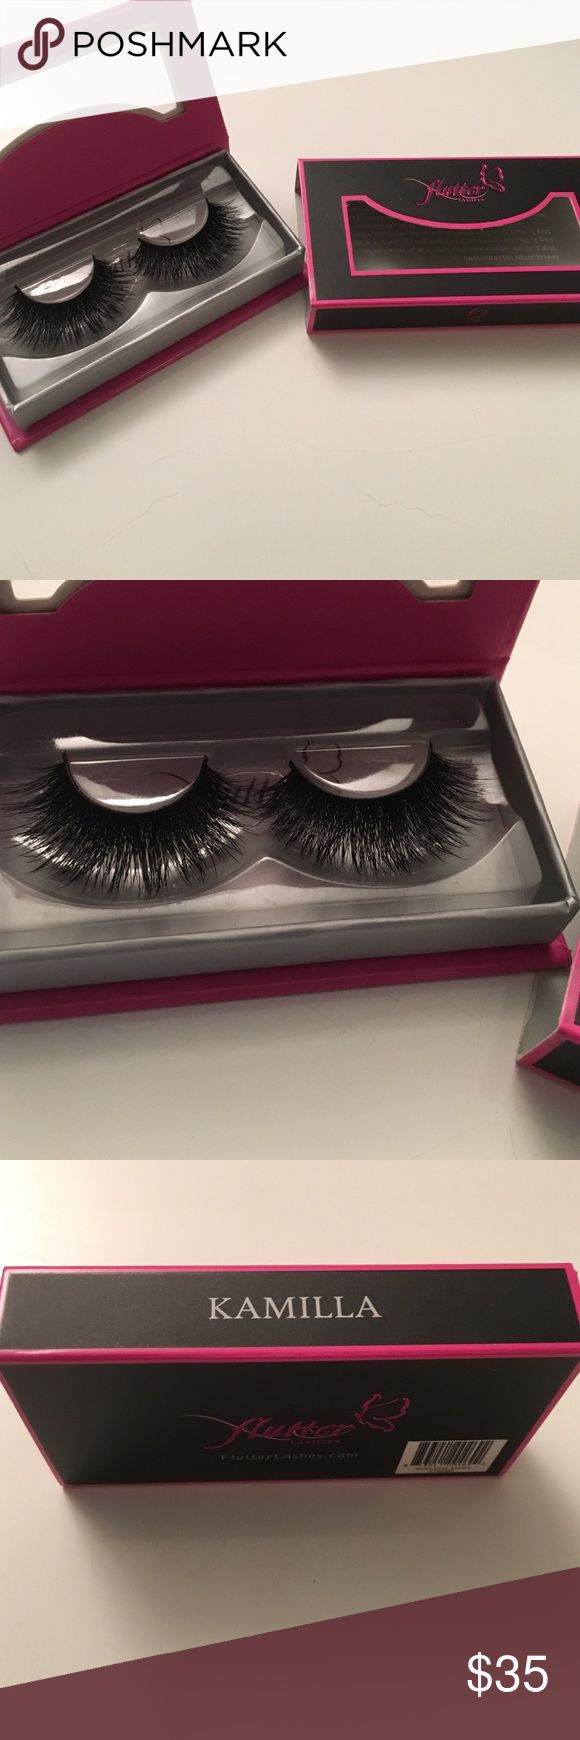 "Flutter Lashes ""Kamilla"" (Mink) Flutter lashes in the style ""Kamilla"" made with genuine mink. Brand new in original box. These are so beautiful and have incredible length and density. Flutter Lashes Makeup False Eyelashes"